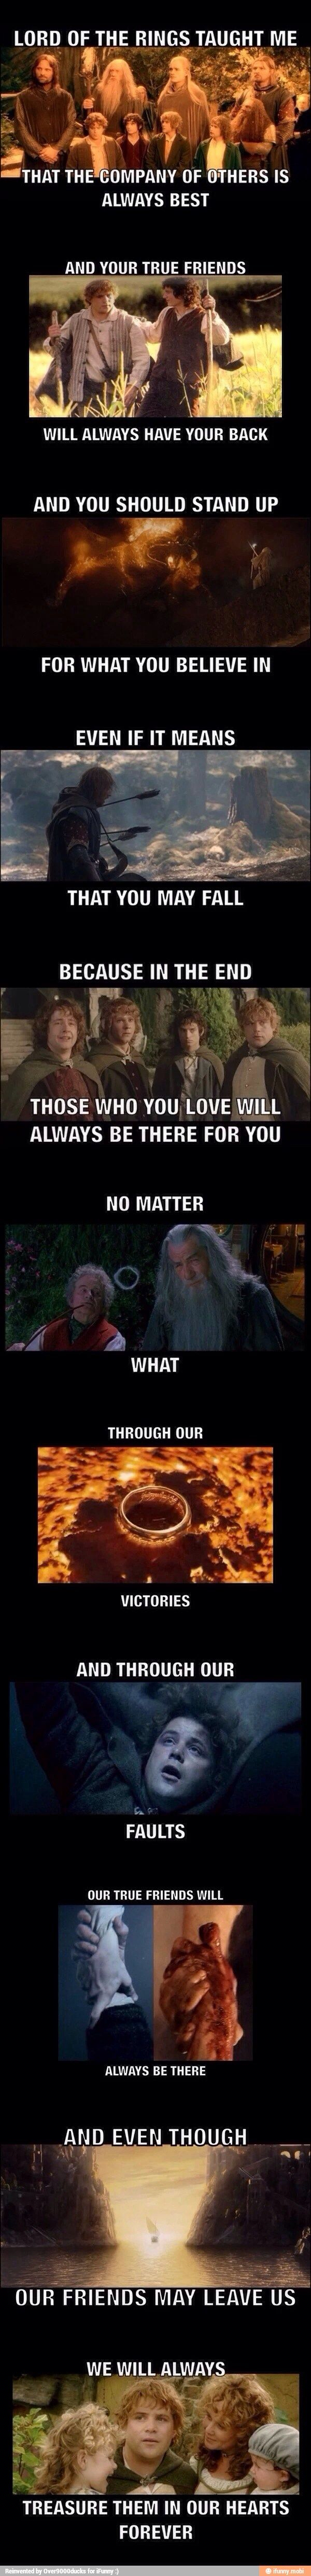 This is so true_ <3 Sticklebacks! These movies are just the best aren't they!